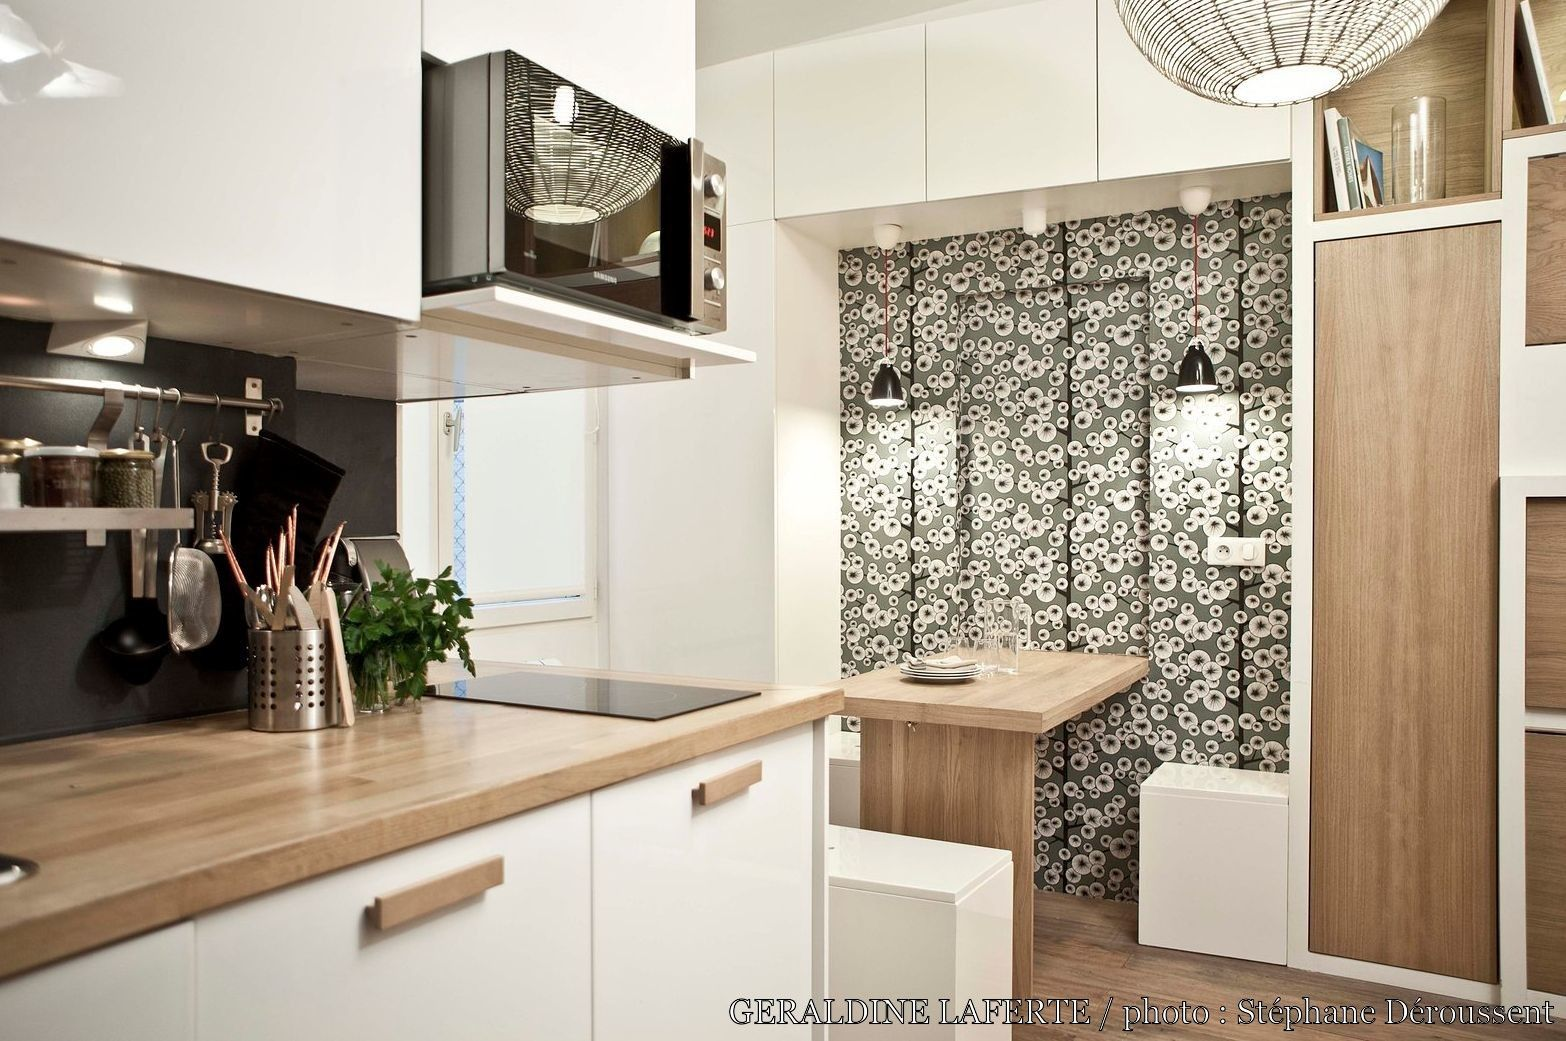 Studio Kitchen For Small Spaces Studio Duhesme 17m2 Gacraldine Lafertac Catac Maison Projets